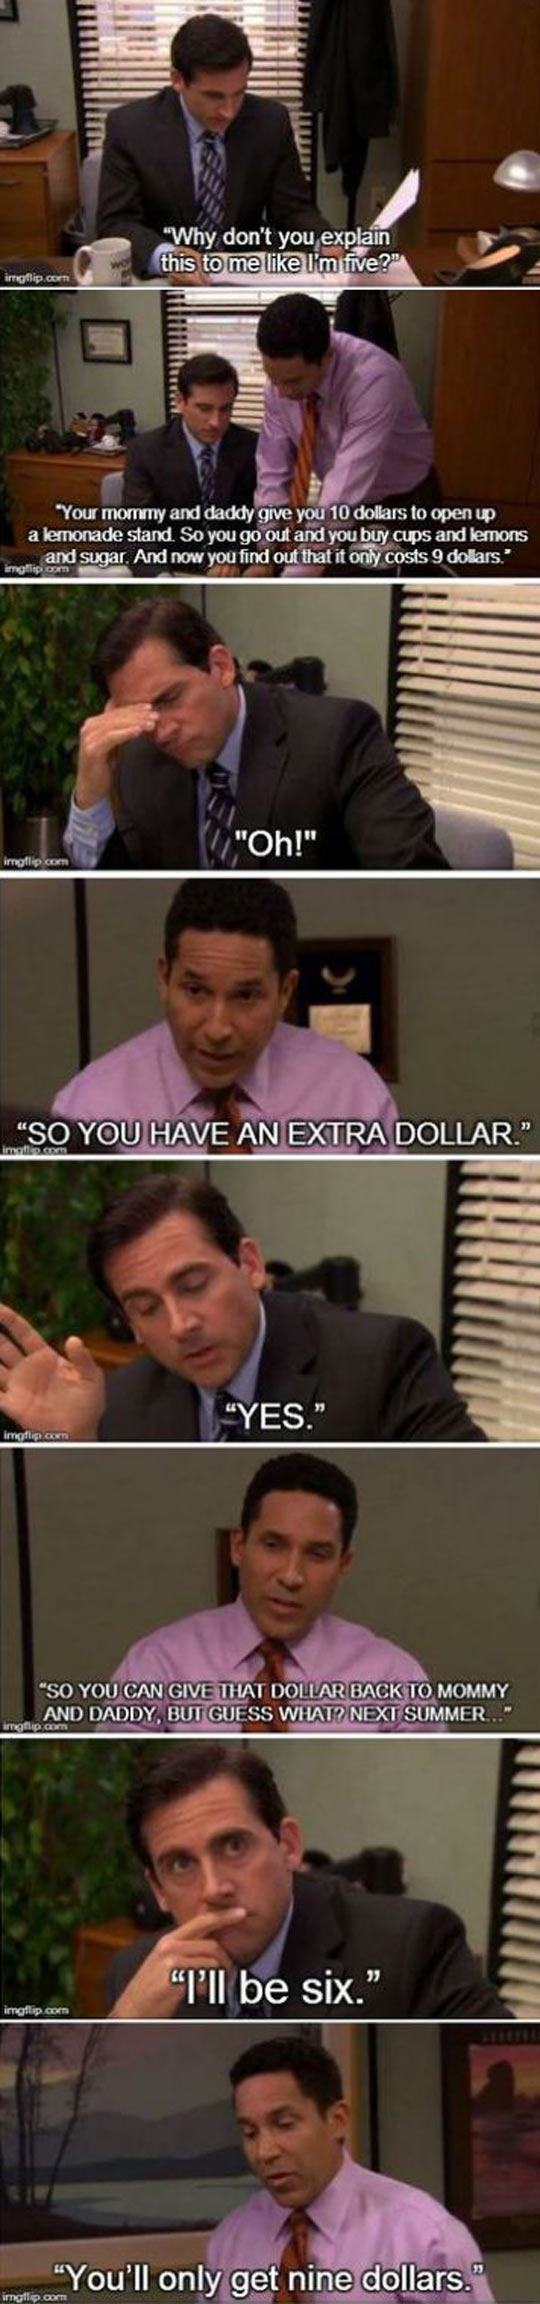 Explain This To Me Like I'm Five | Office humor, Office ...